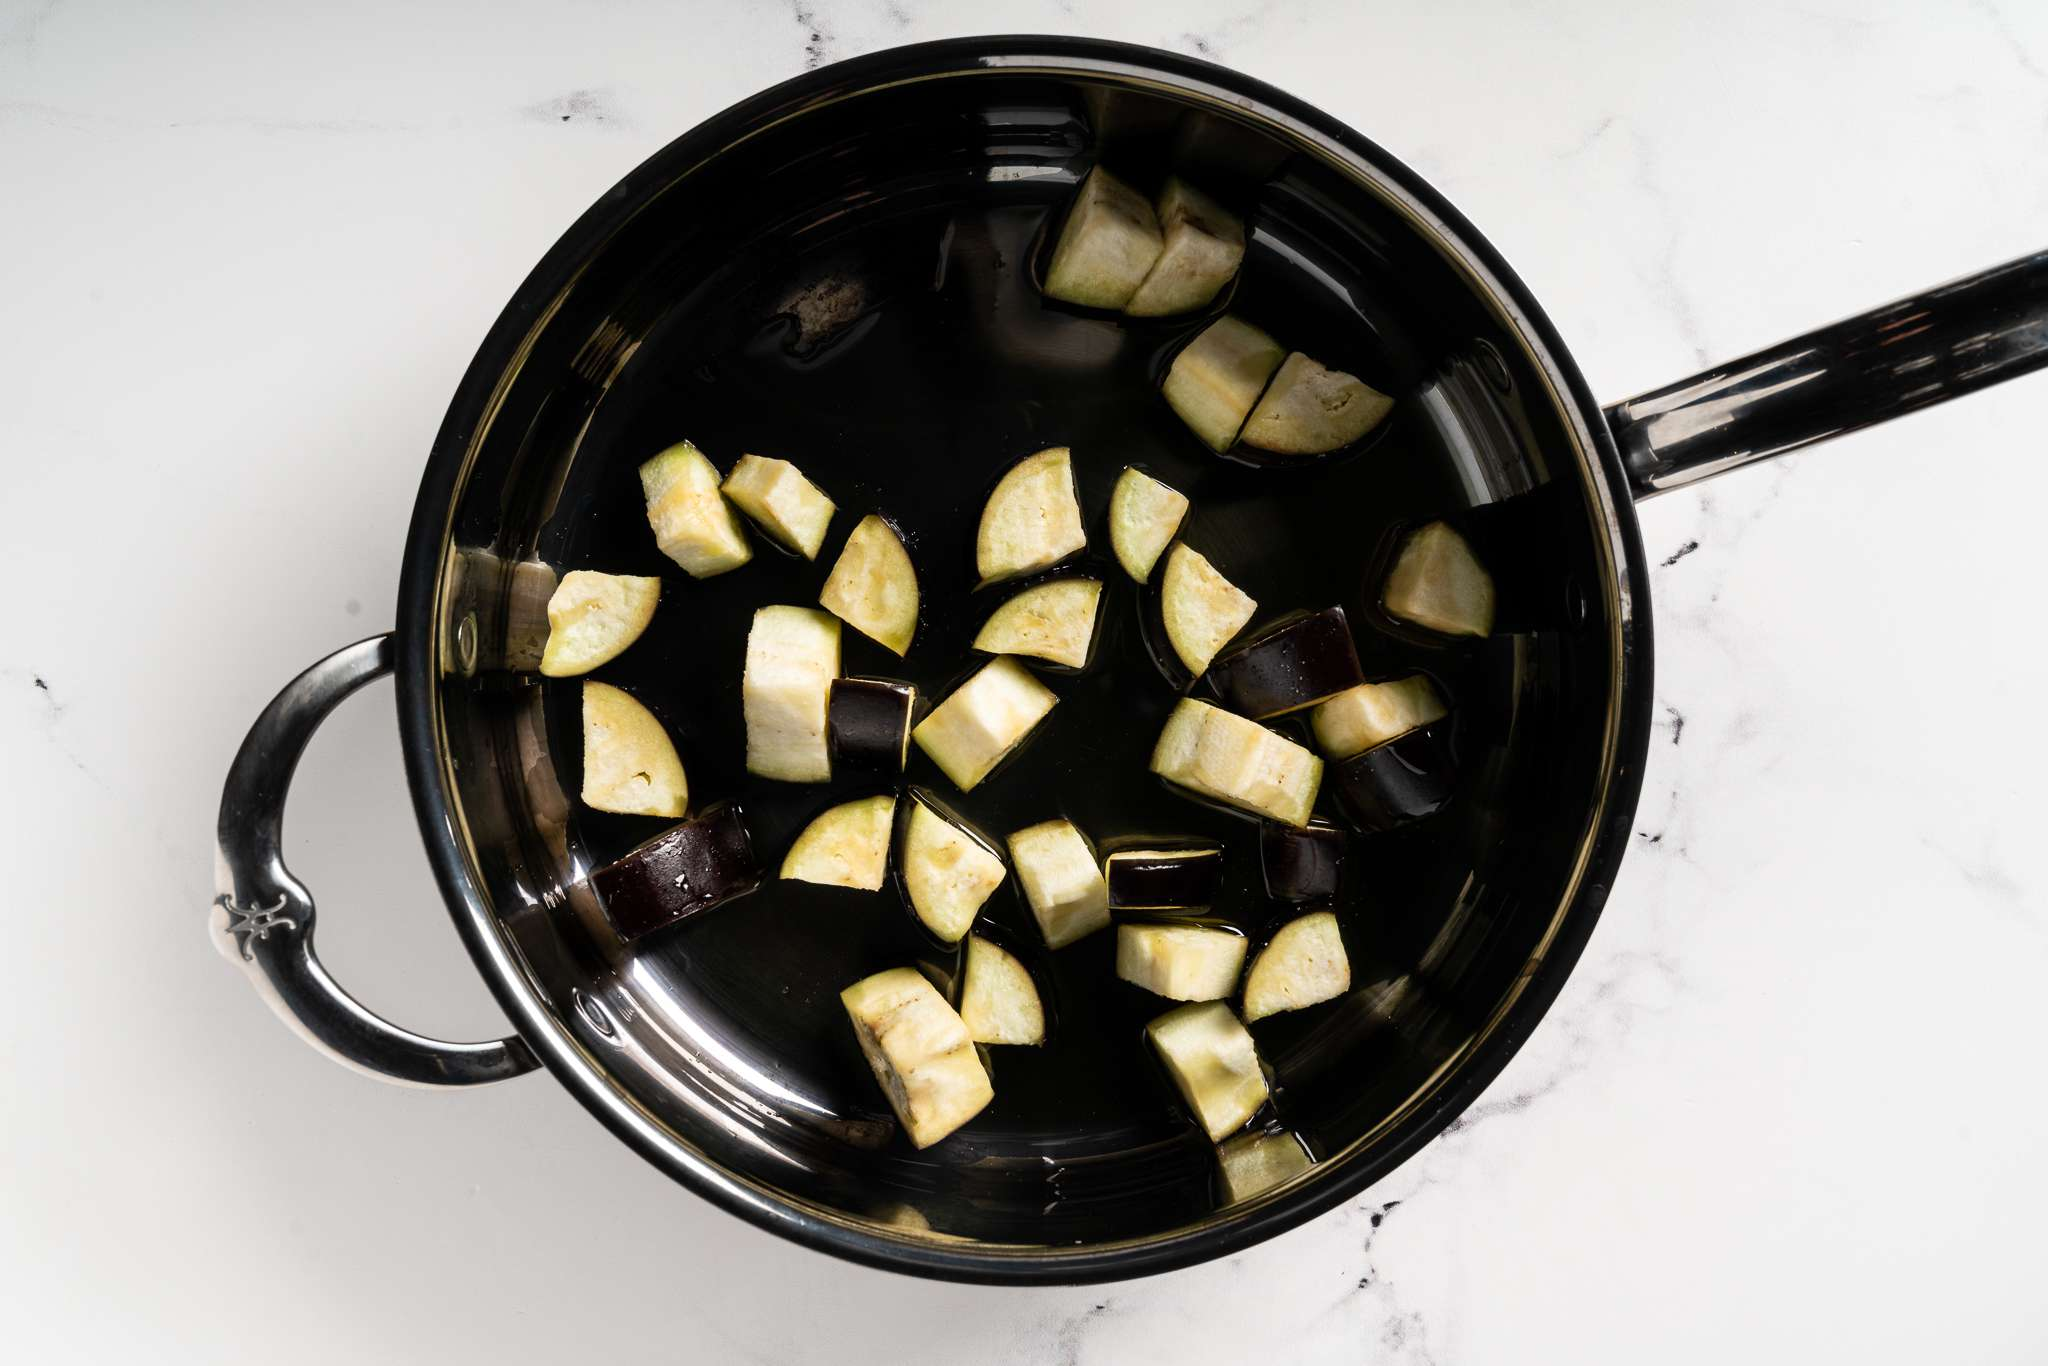 Eggplant in a skillet with oil